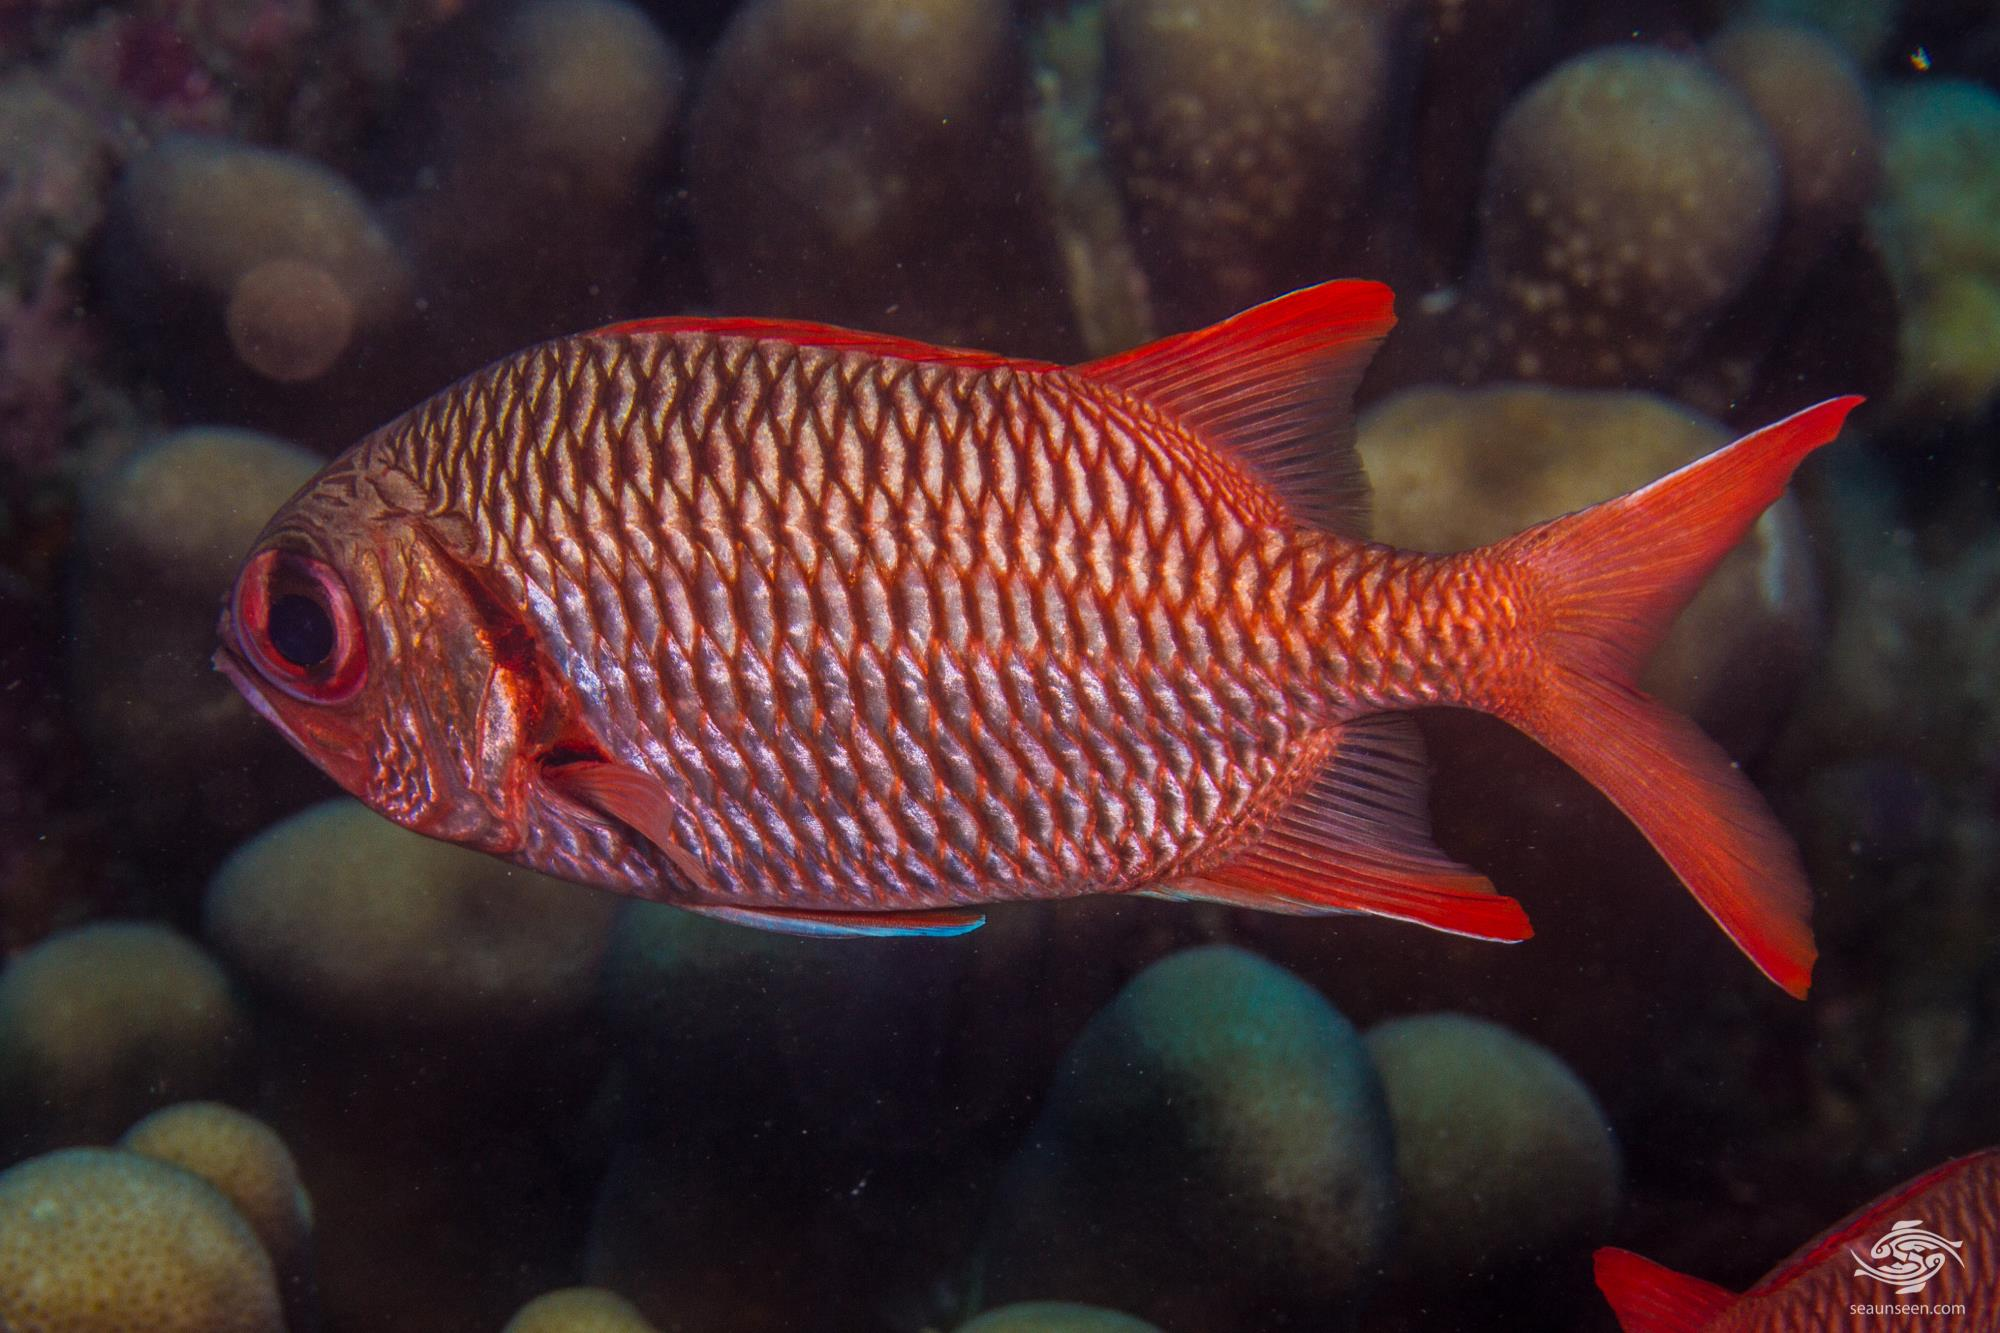 Doubletooth Soldierfish (Myripristis hexagona) is also known as the Blacktip Soldierfish, the Large-scale Soldierfish , the Pale Soldierfish and the Red-fin Squirrelfish